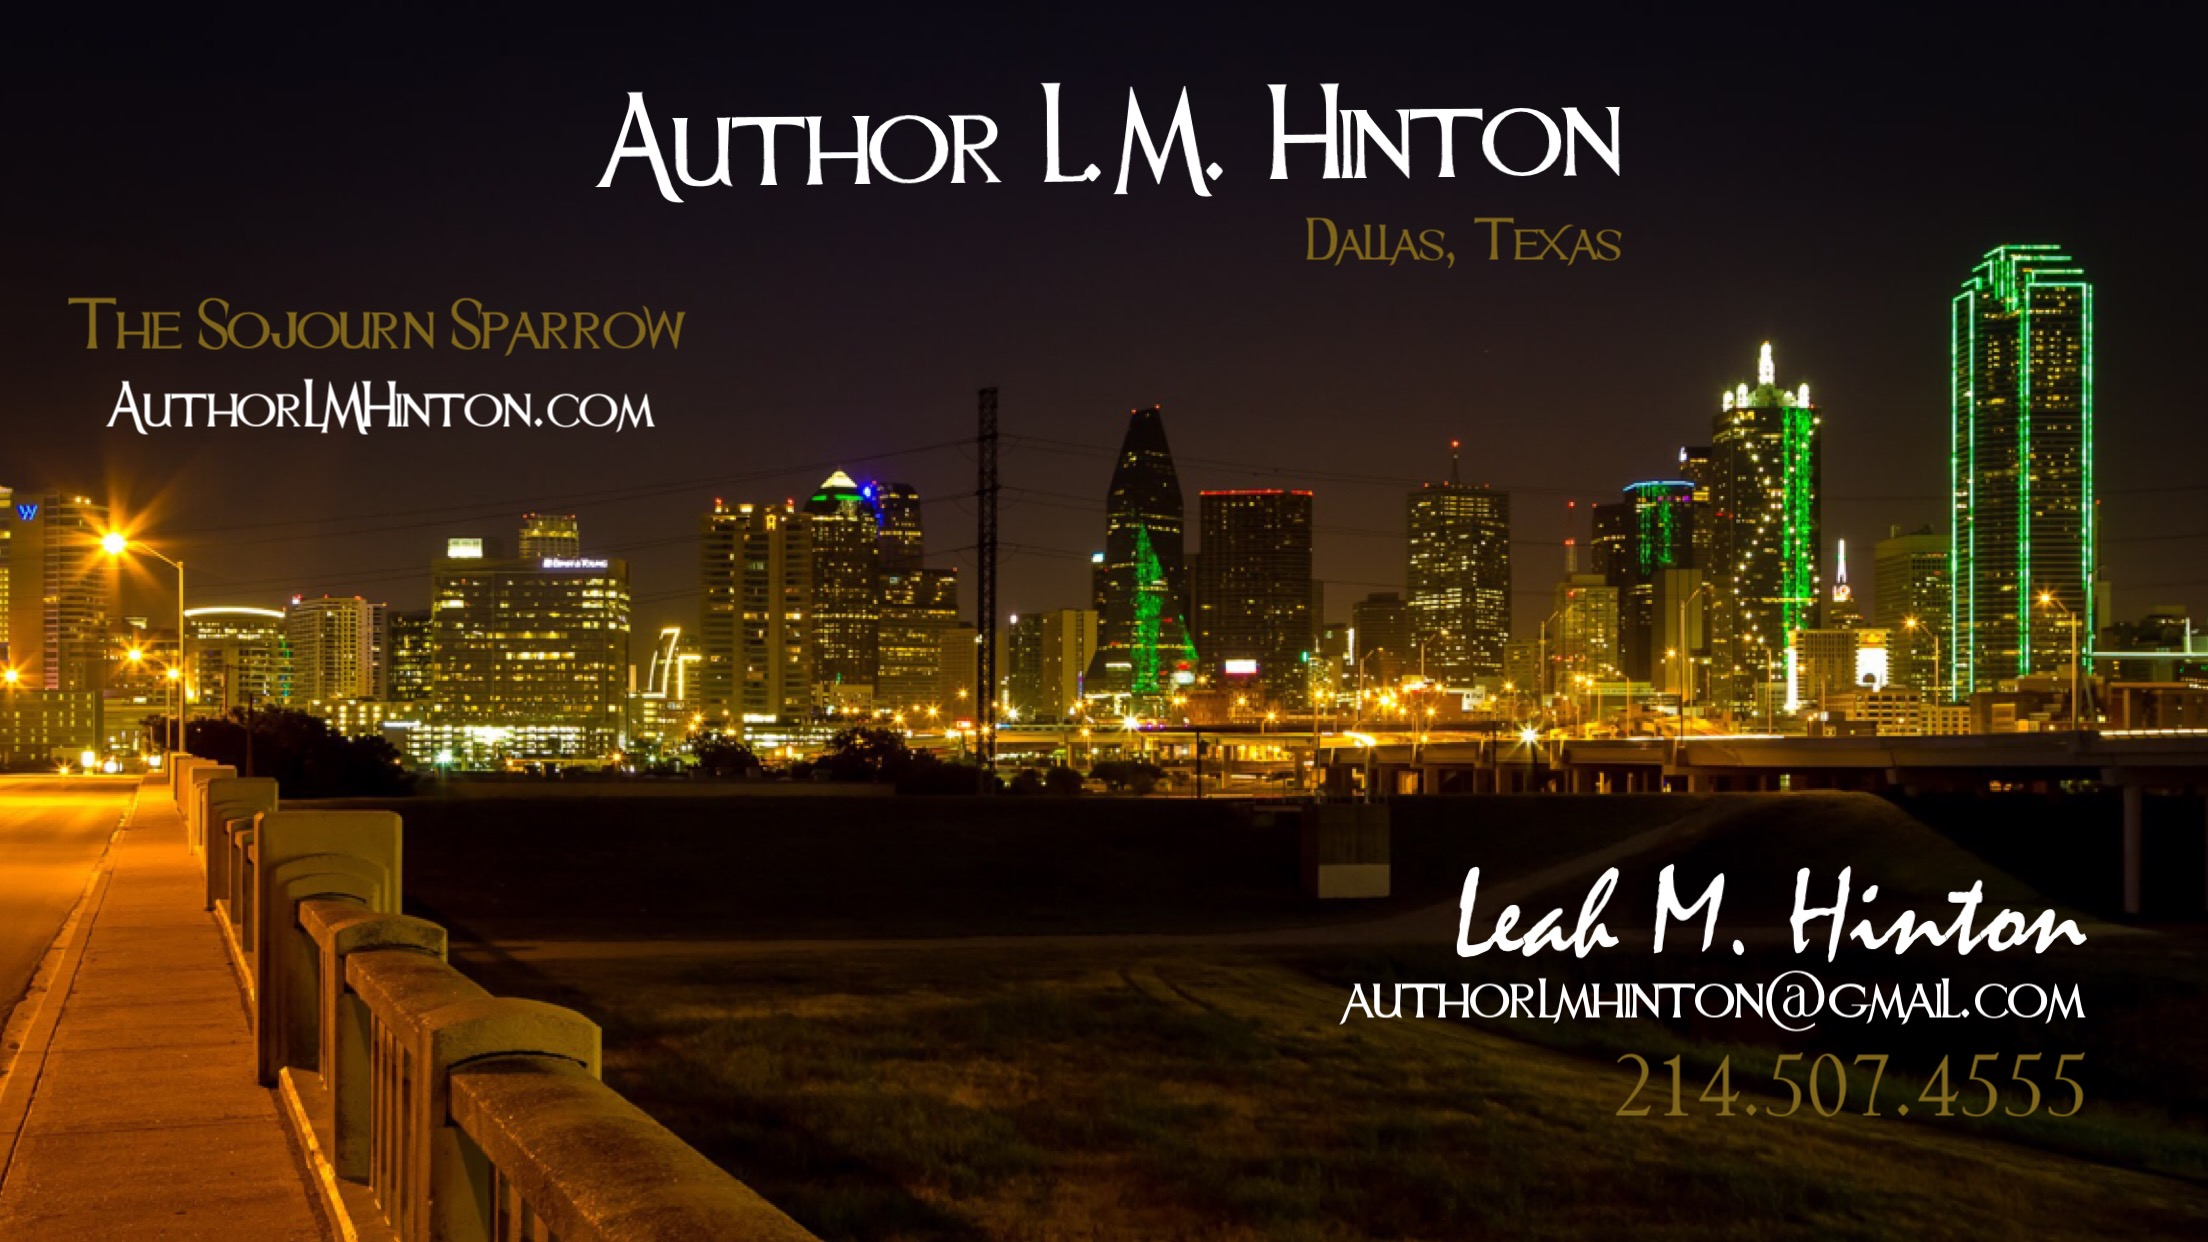 Author LM Hinton